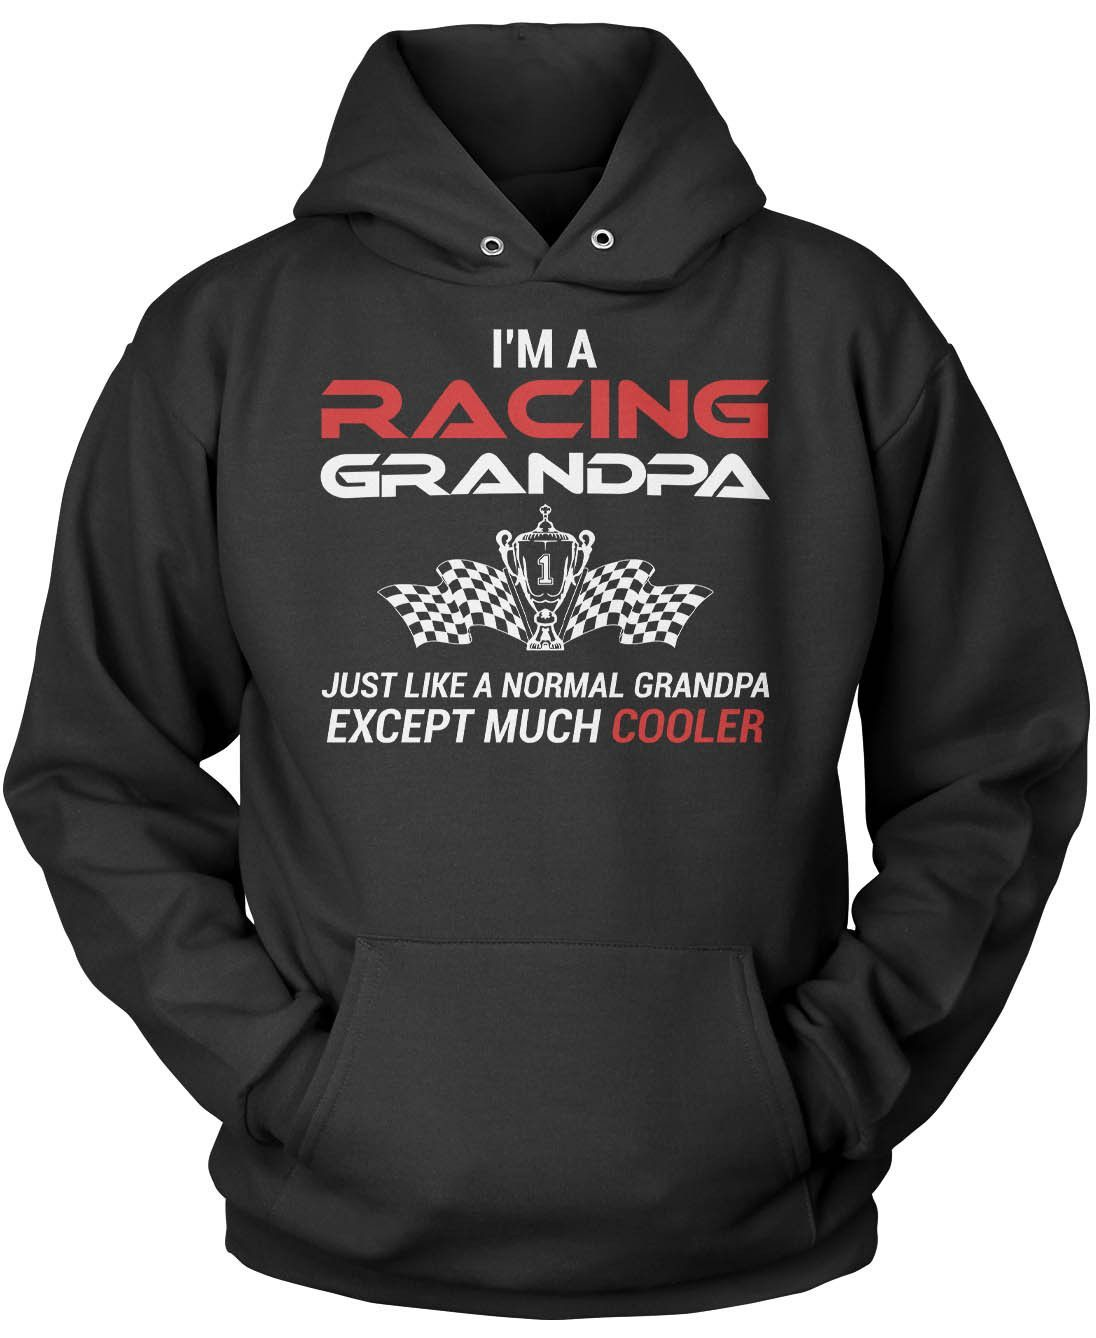 I'm a Racing Grandpa Except Much Cooler